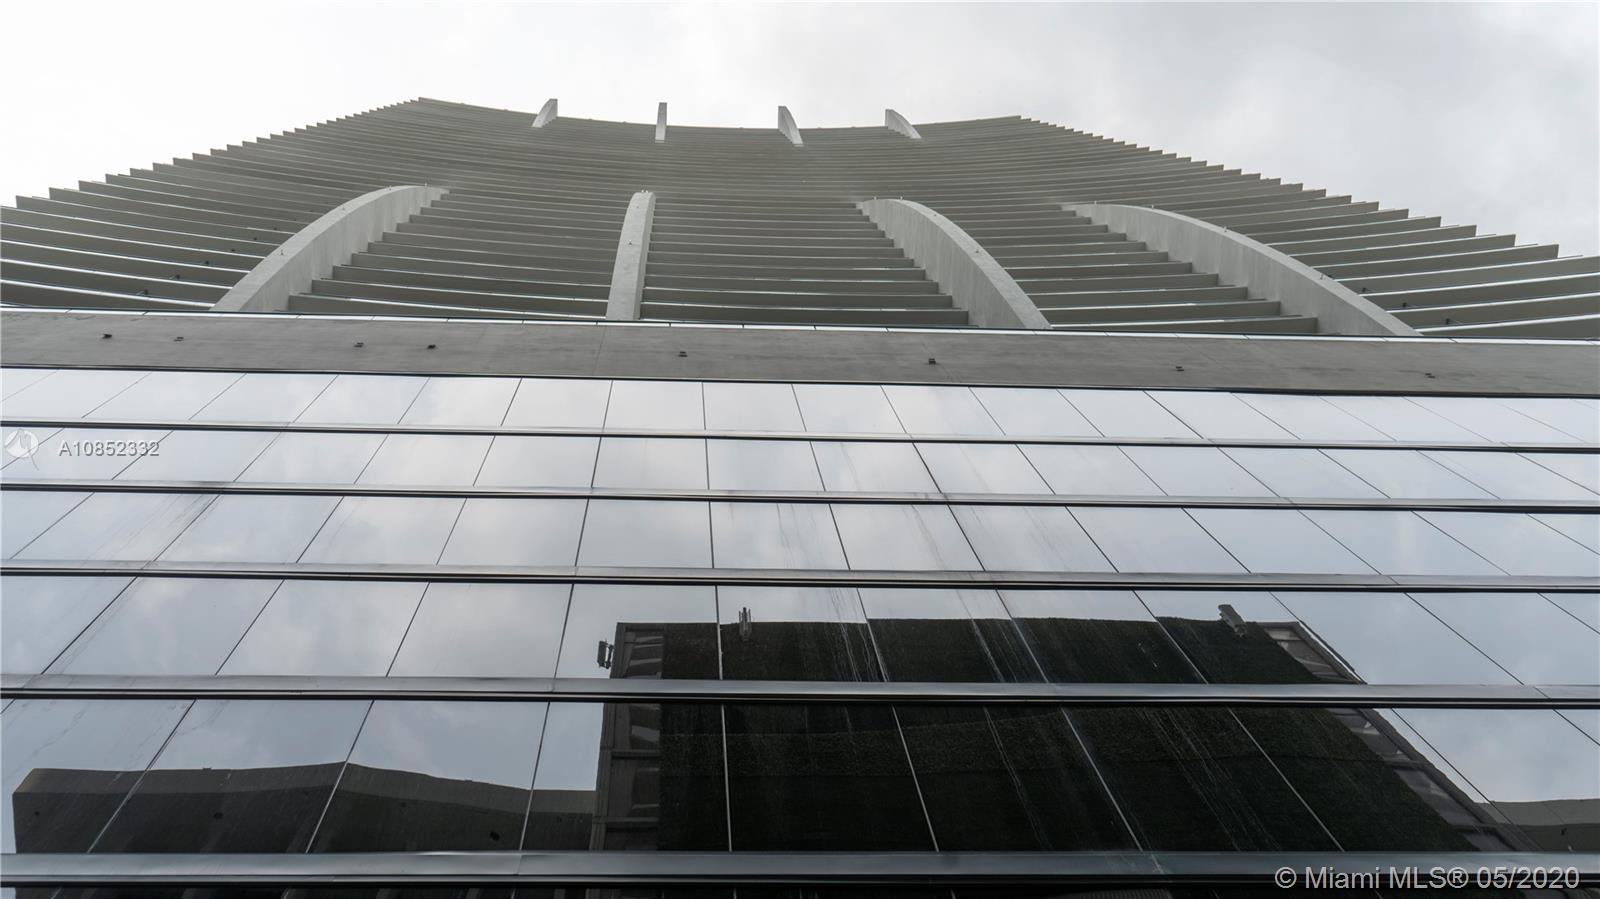 1010 Brickell Ave # 3105, Miami, Florida 33131, 3 Bedrooms Bedrooms, 6 Rooms Rooms,3 BathroomsBathrooms,Residential,For Sale,1010 Brickell Ave # 3105,A10852332